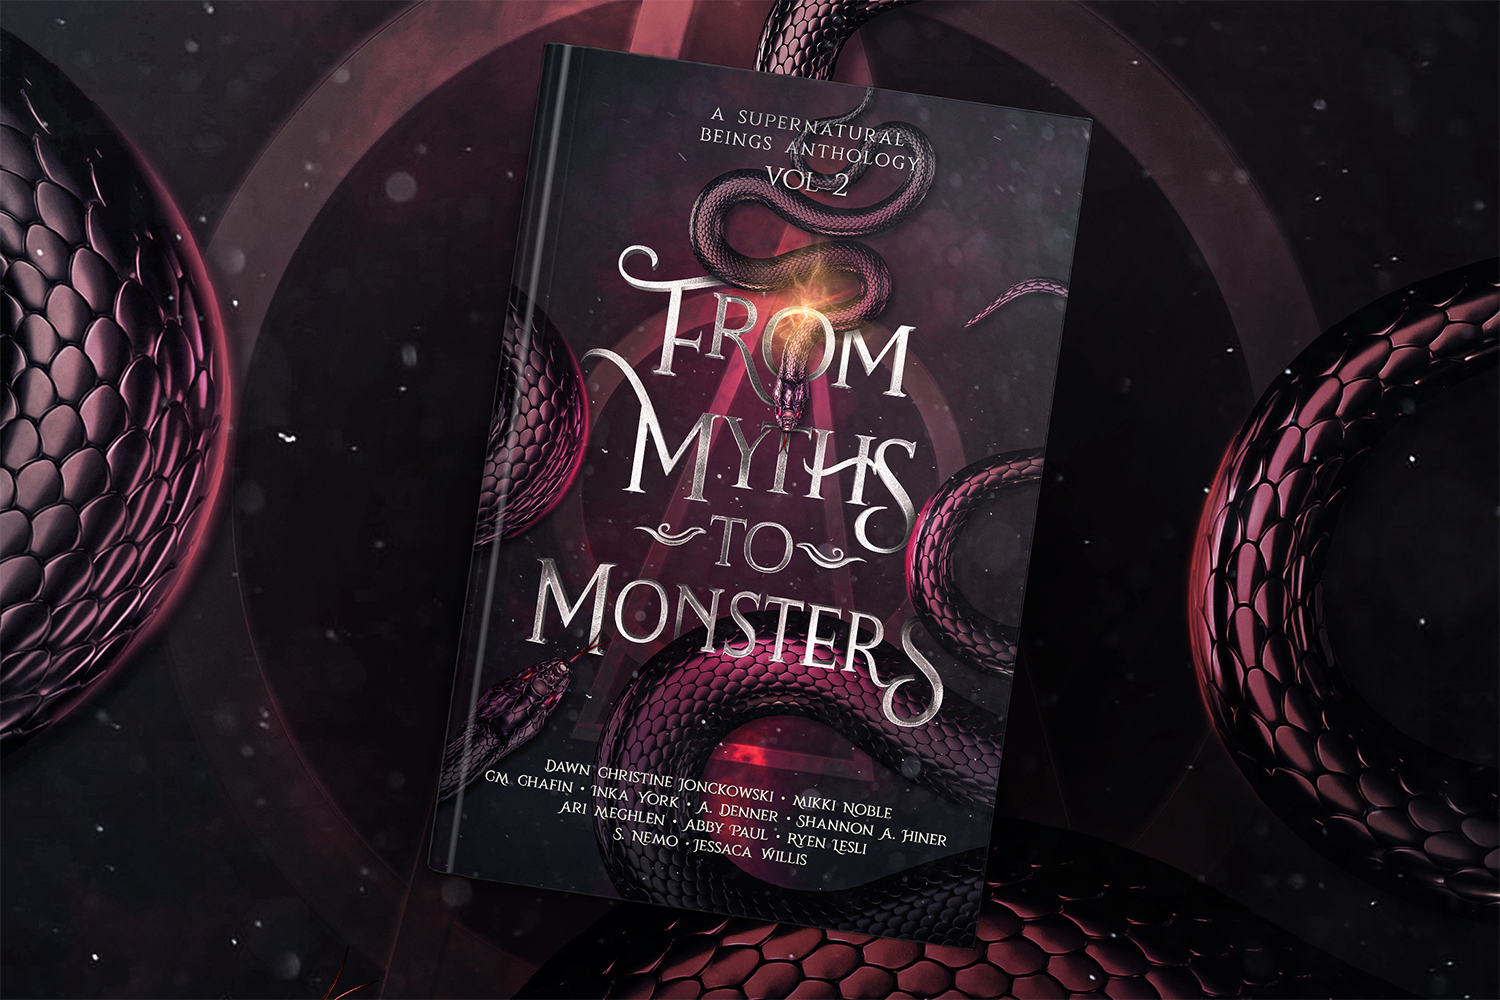 Book cover of From Myths To Monsters, Supernatural Beings Anthology Volume 2